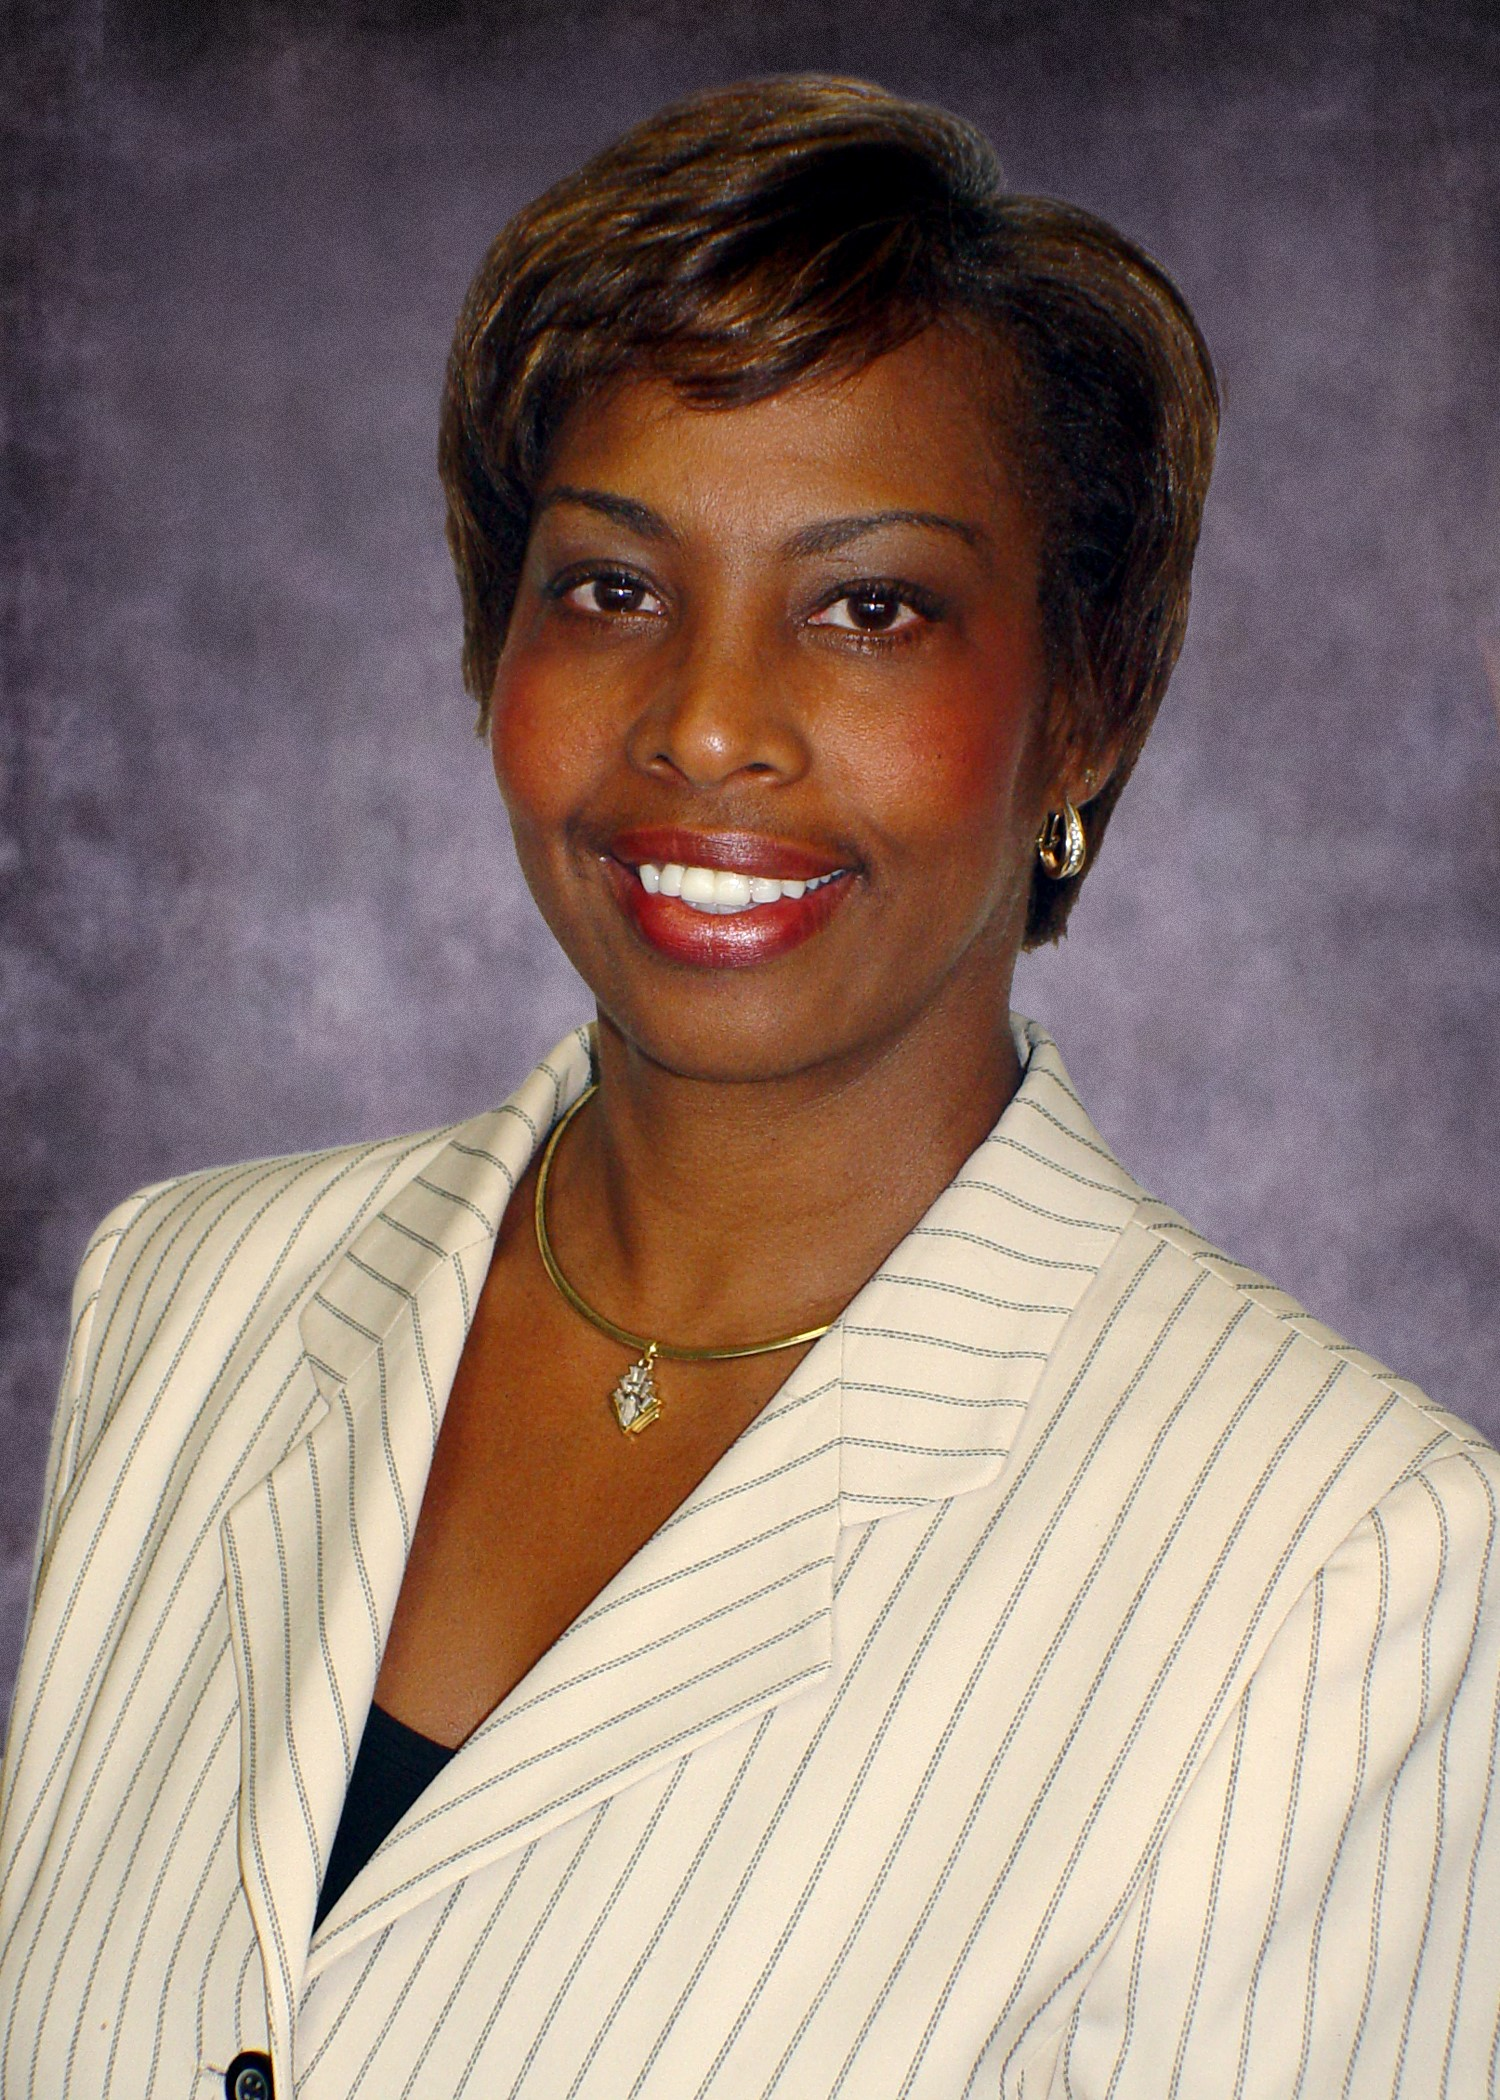 Zandra D. Harris, Ph.D. Honored as a Professional of the Year for 2021 by Strathmore's Who's Who Worldwide Publication